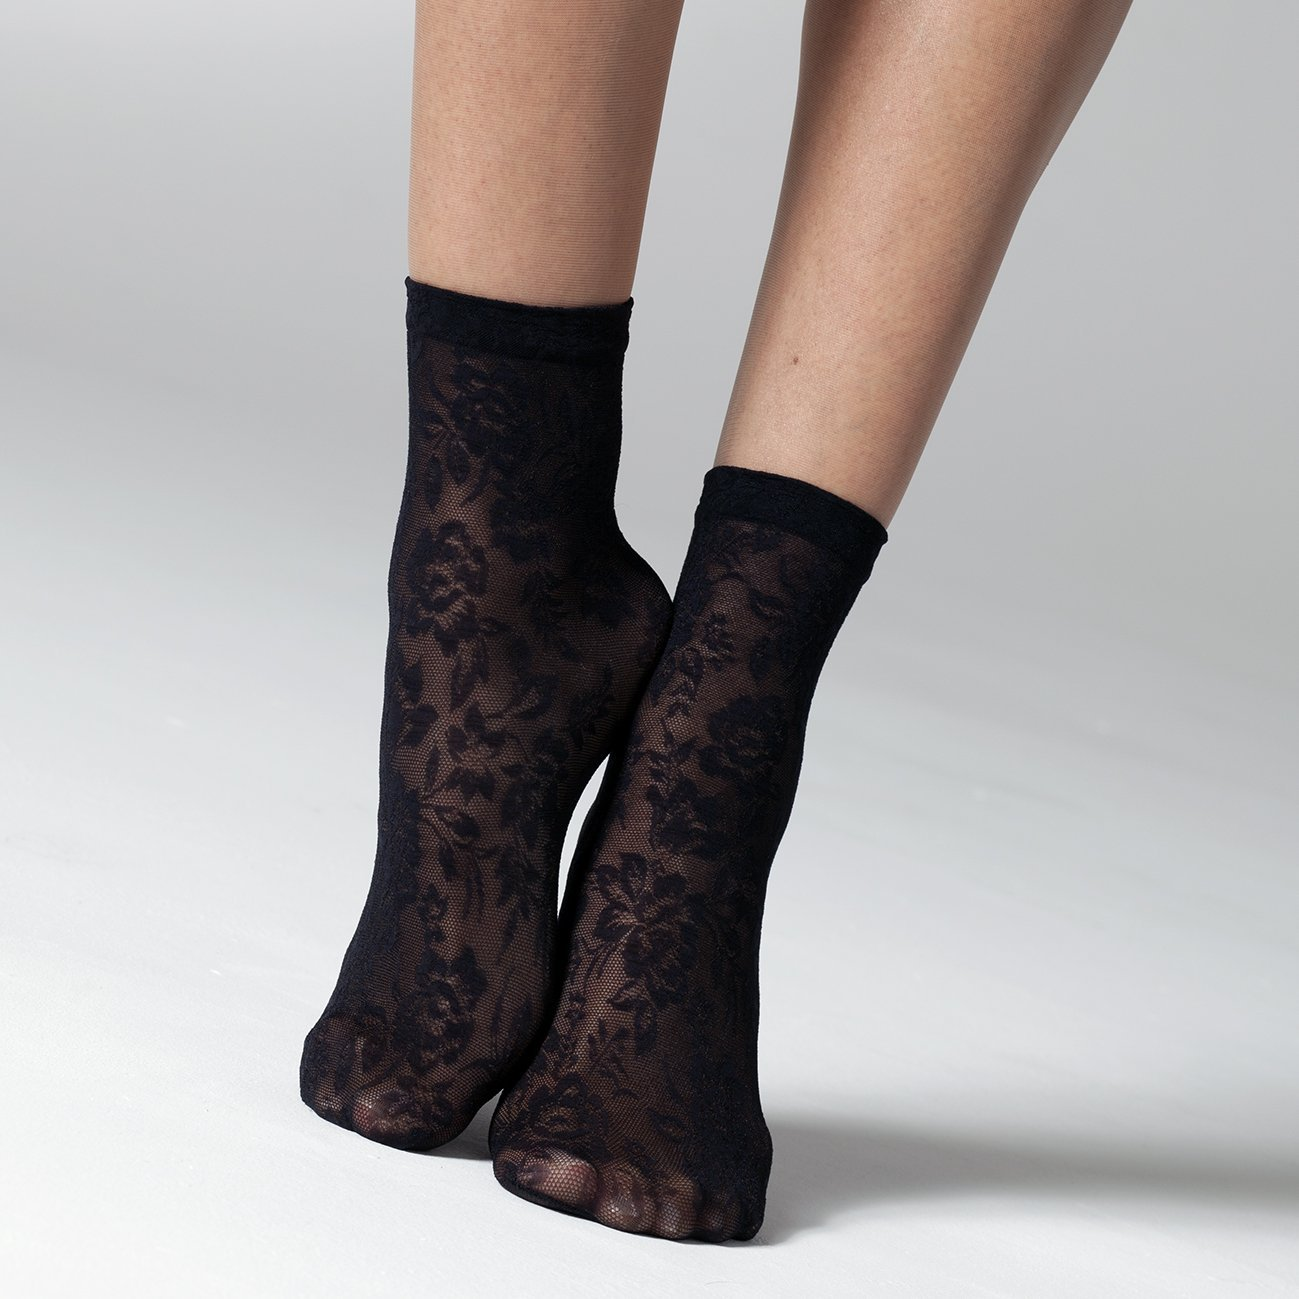 Rose Lace Ankle Socks - Rockamilly-Hosiery-Vintage